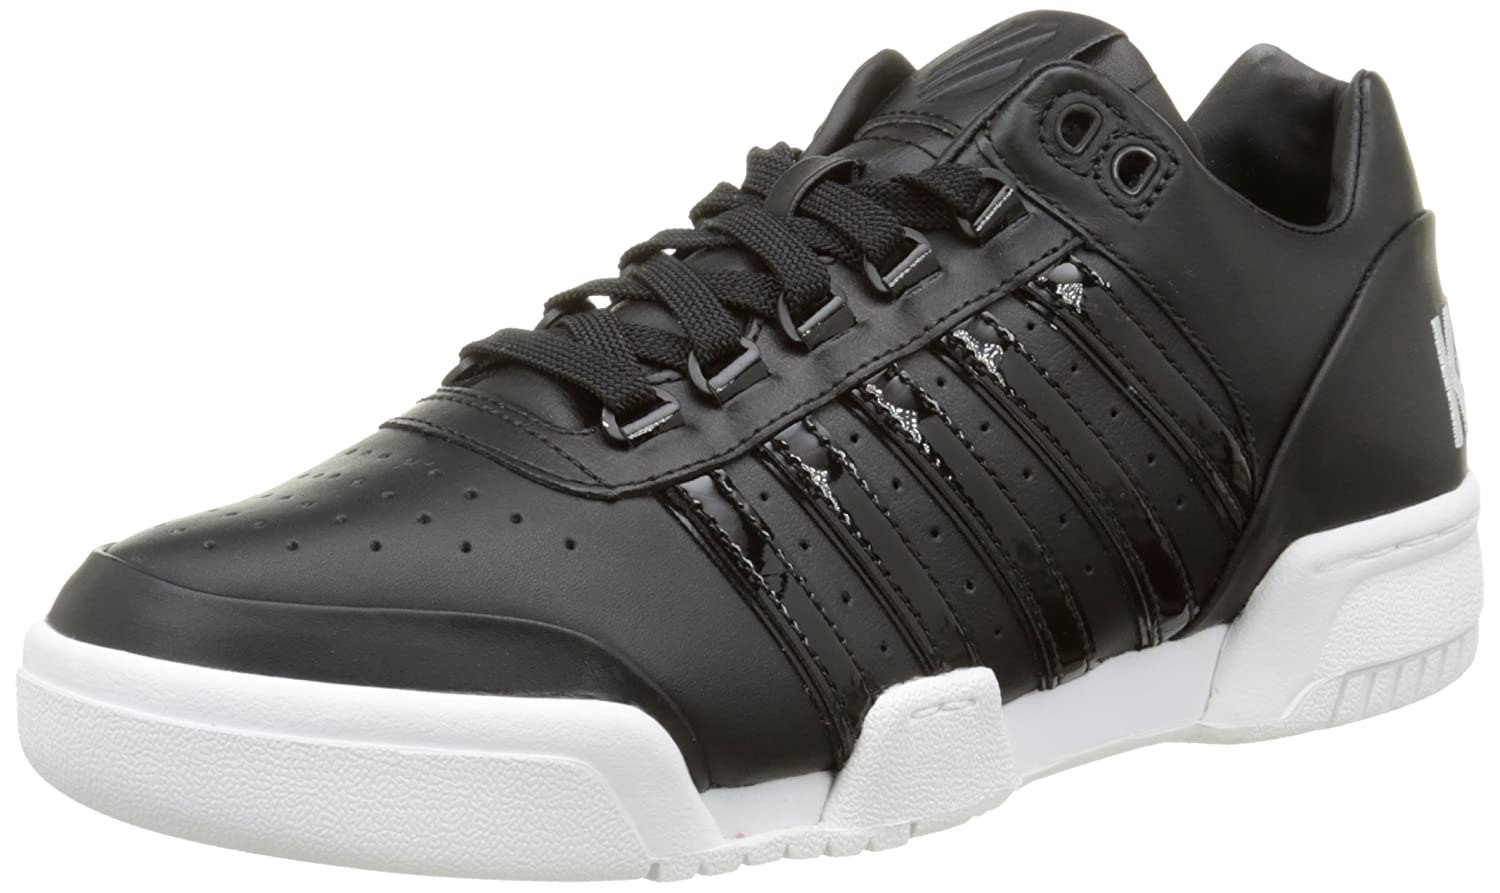 f154b4af269f3 K-Swiss Gstaad Big Logo, Men's Trainers: Amazon.co.uk: Shoes & Bags